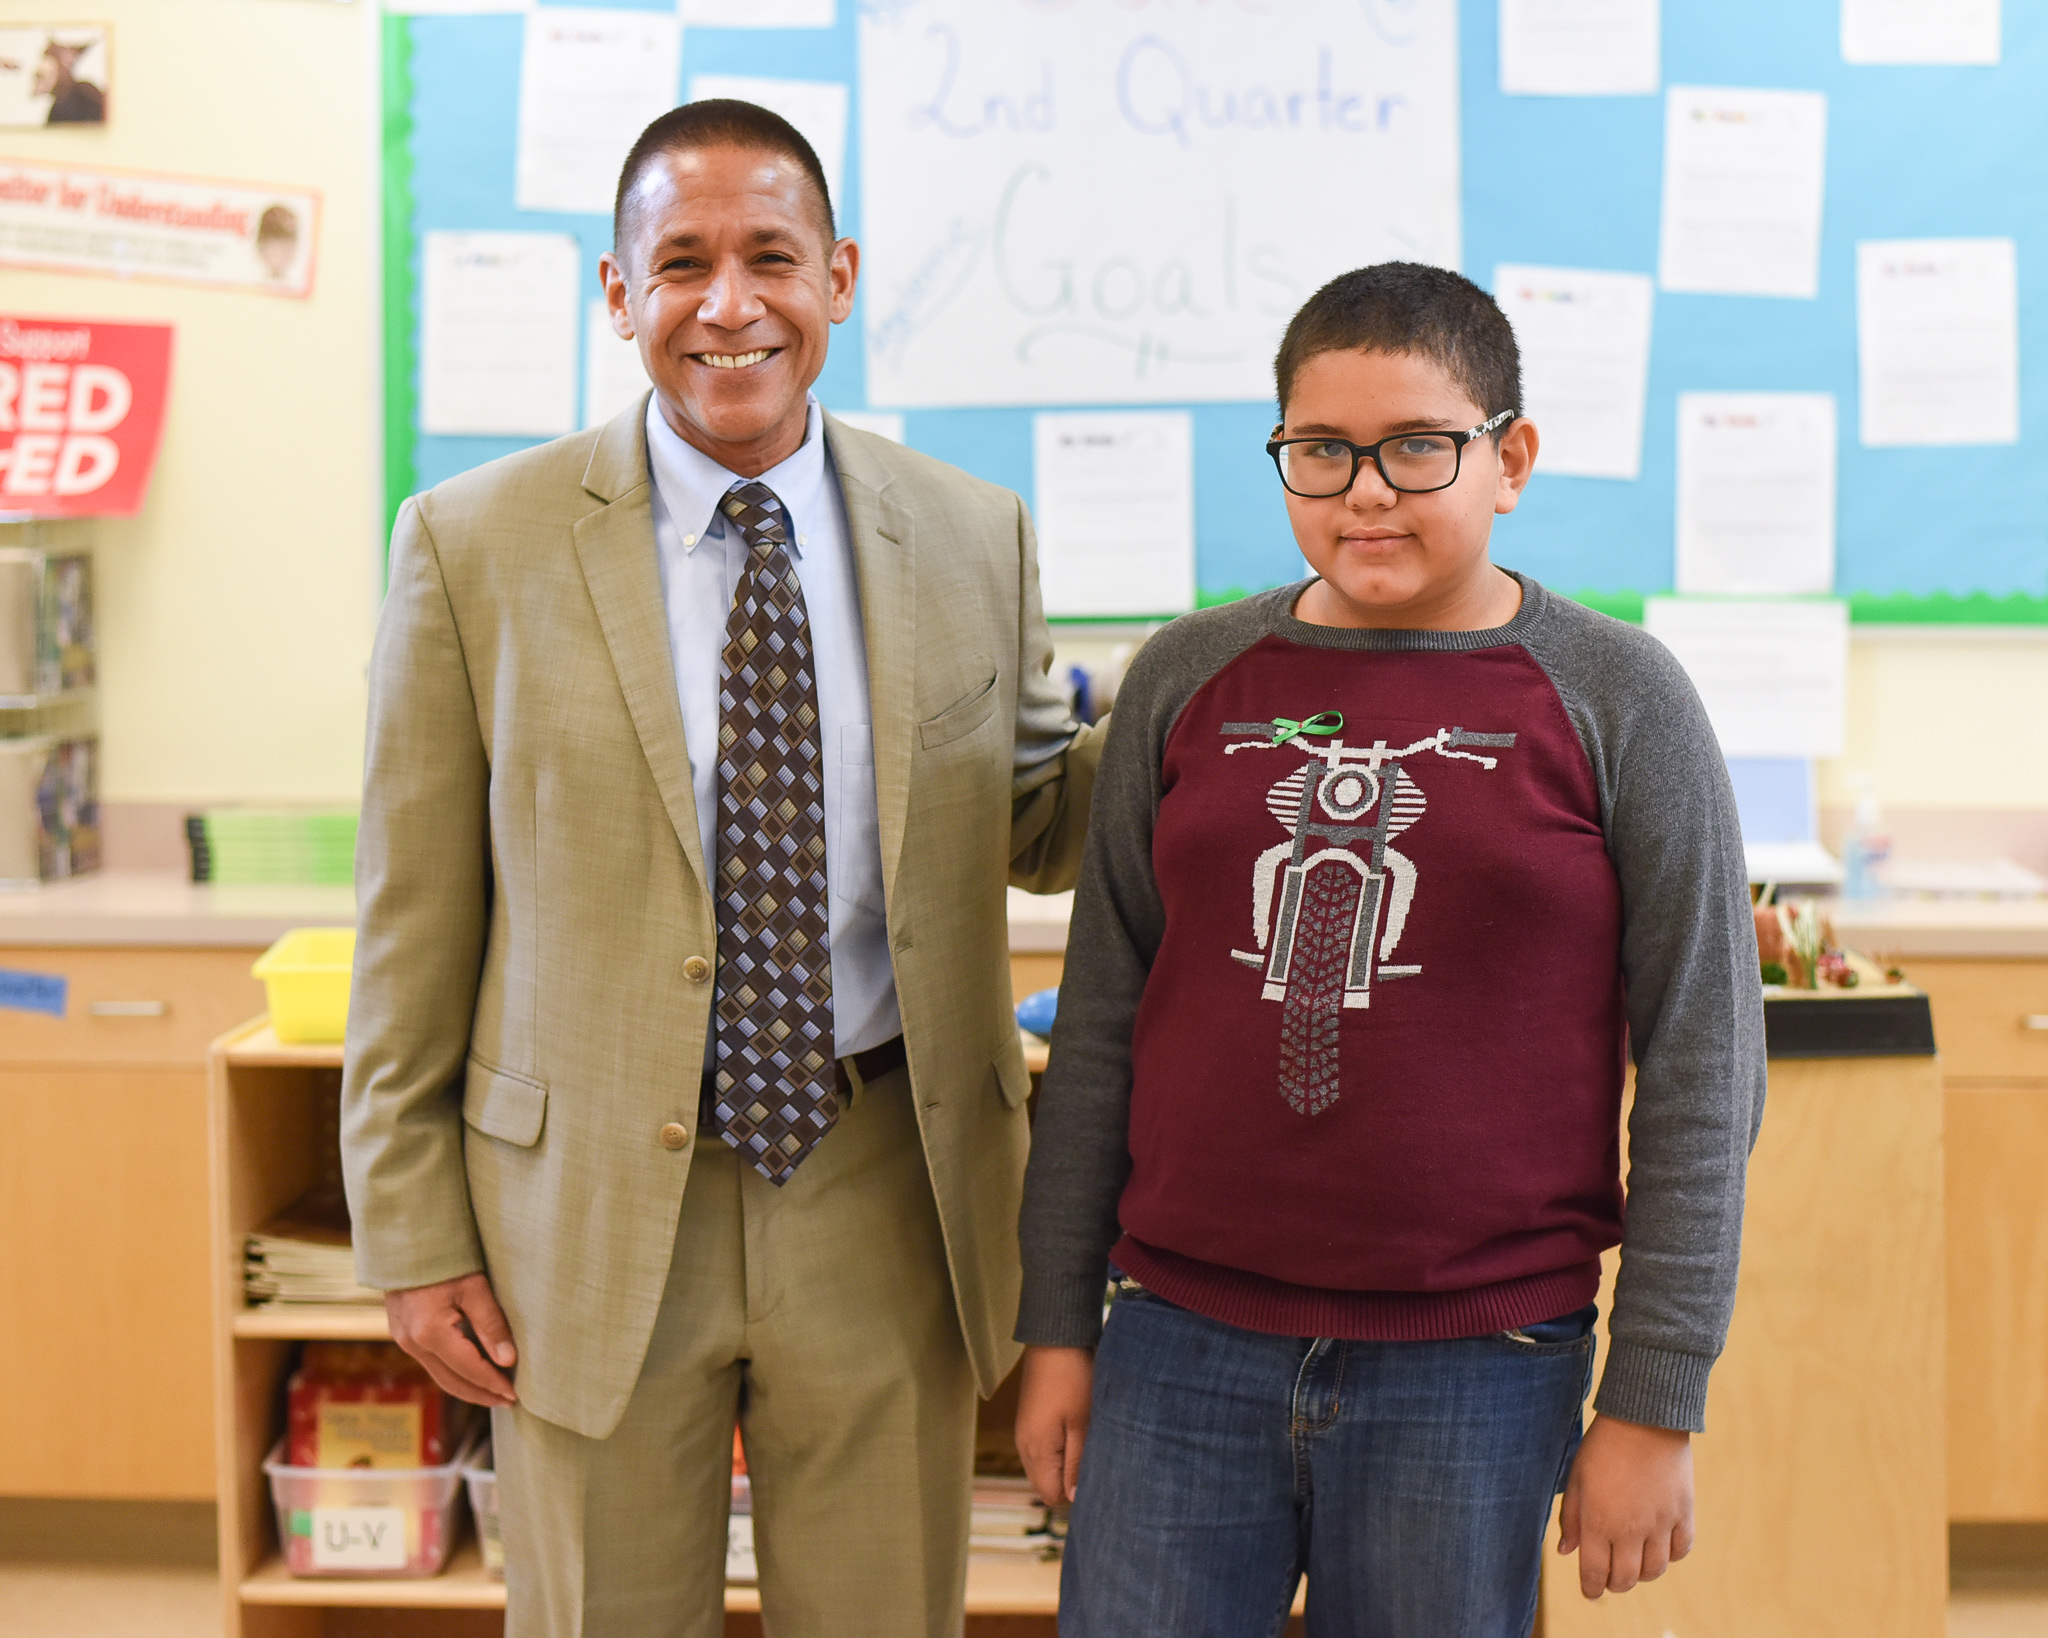 Dr. Trujillo with Maldonado student who received 100% on 3rd Grade math AZ merit